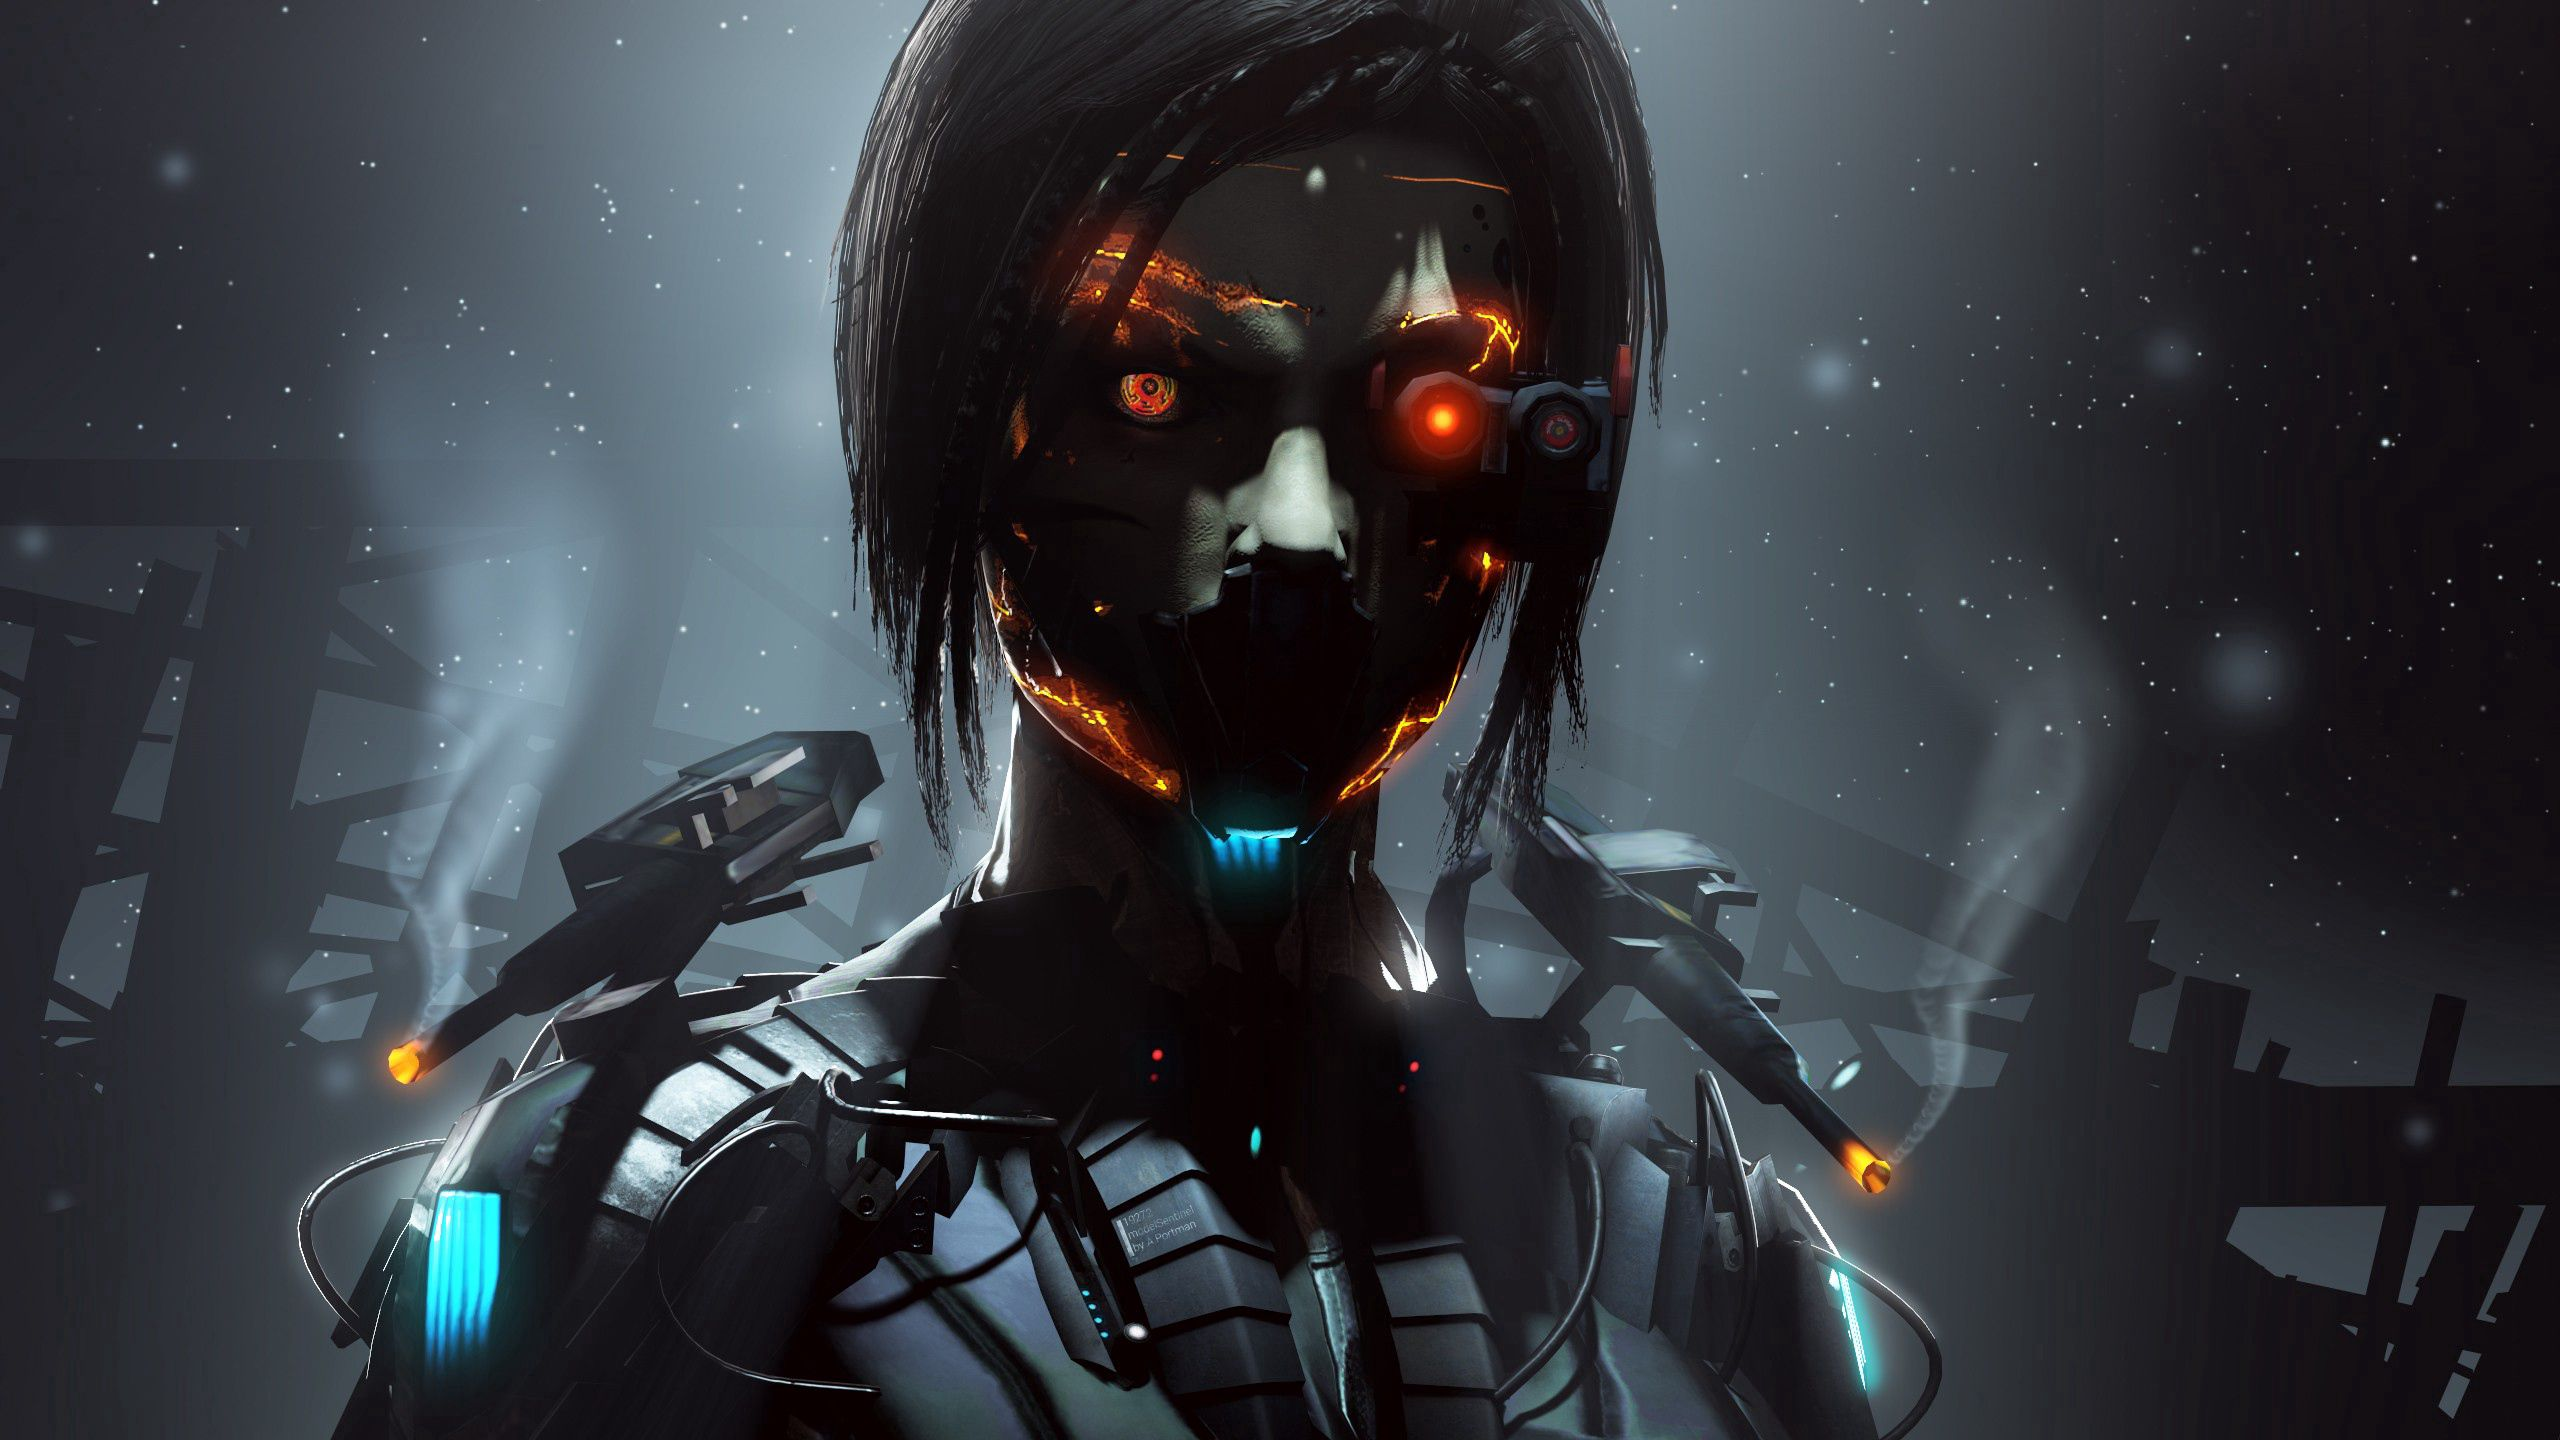 72559 download wallpaper Dark, Art, Eyes, Robot, Cyborg screensavers and pictures for free